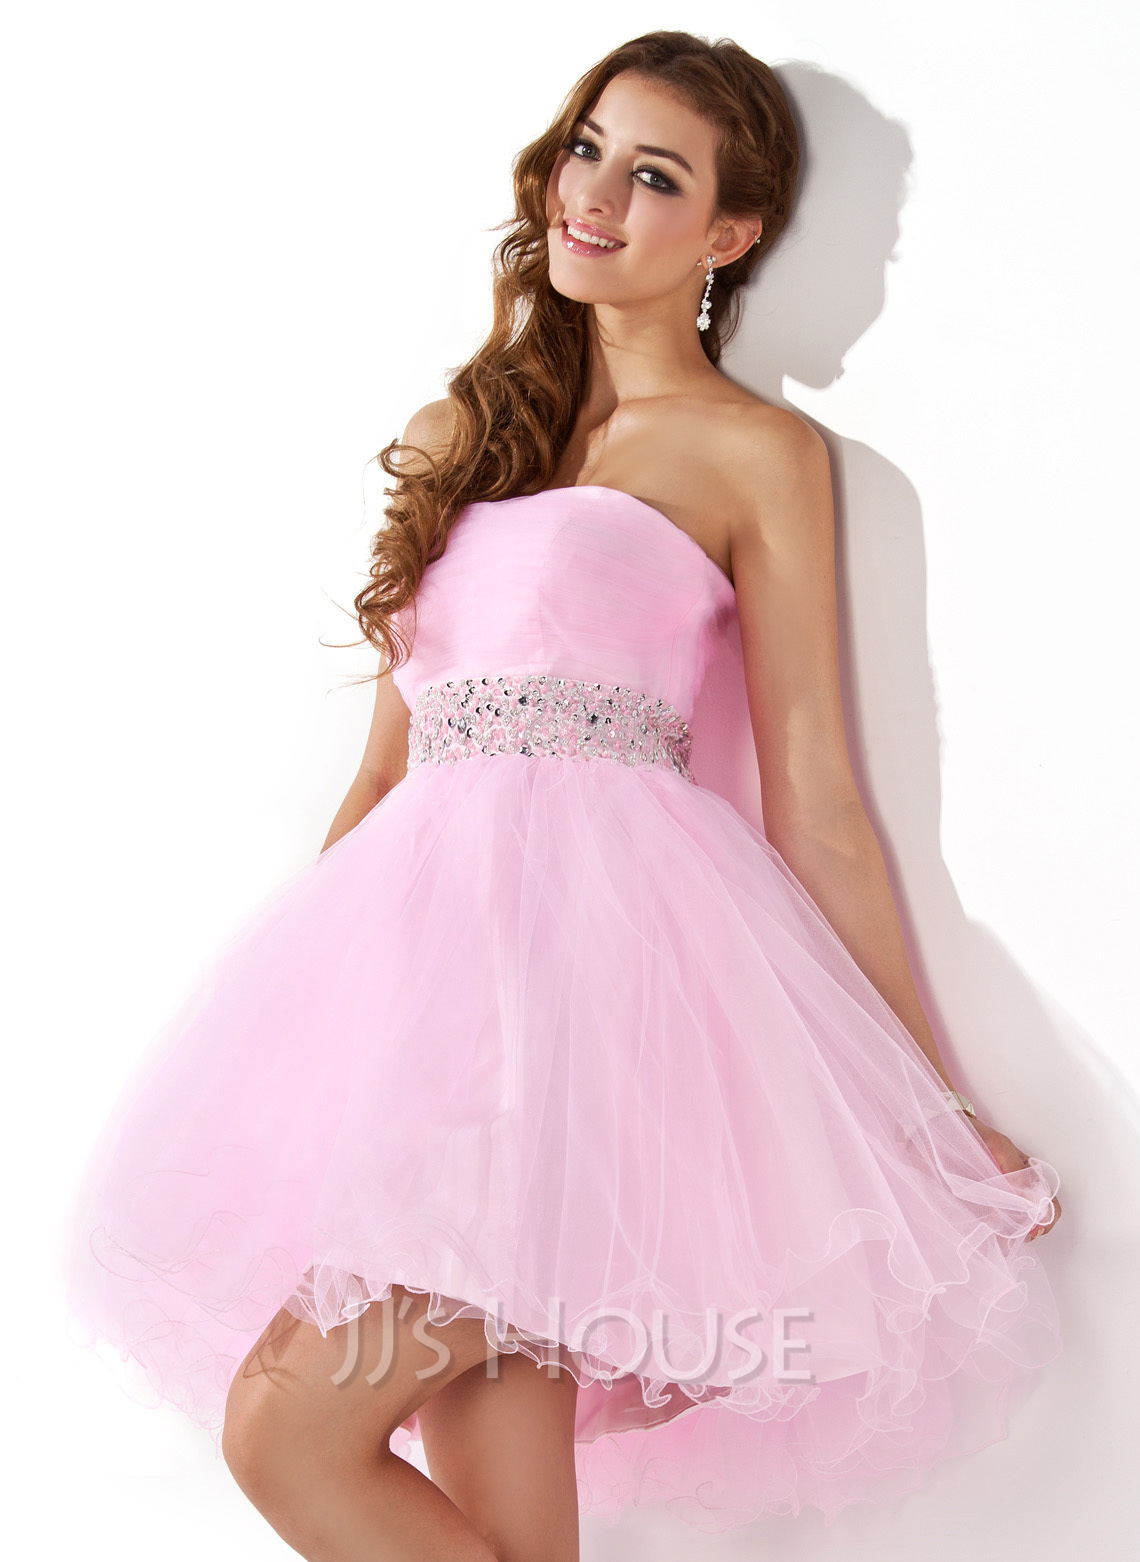 A-Line/Princess Sweetheart Short/Mini Tulle Prom Dresses With Beading Sequins